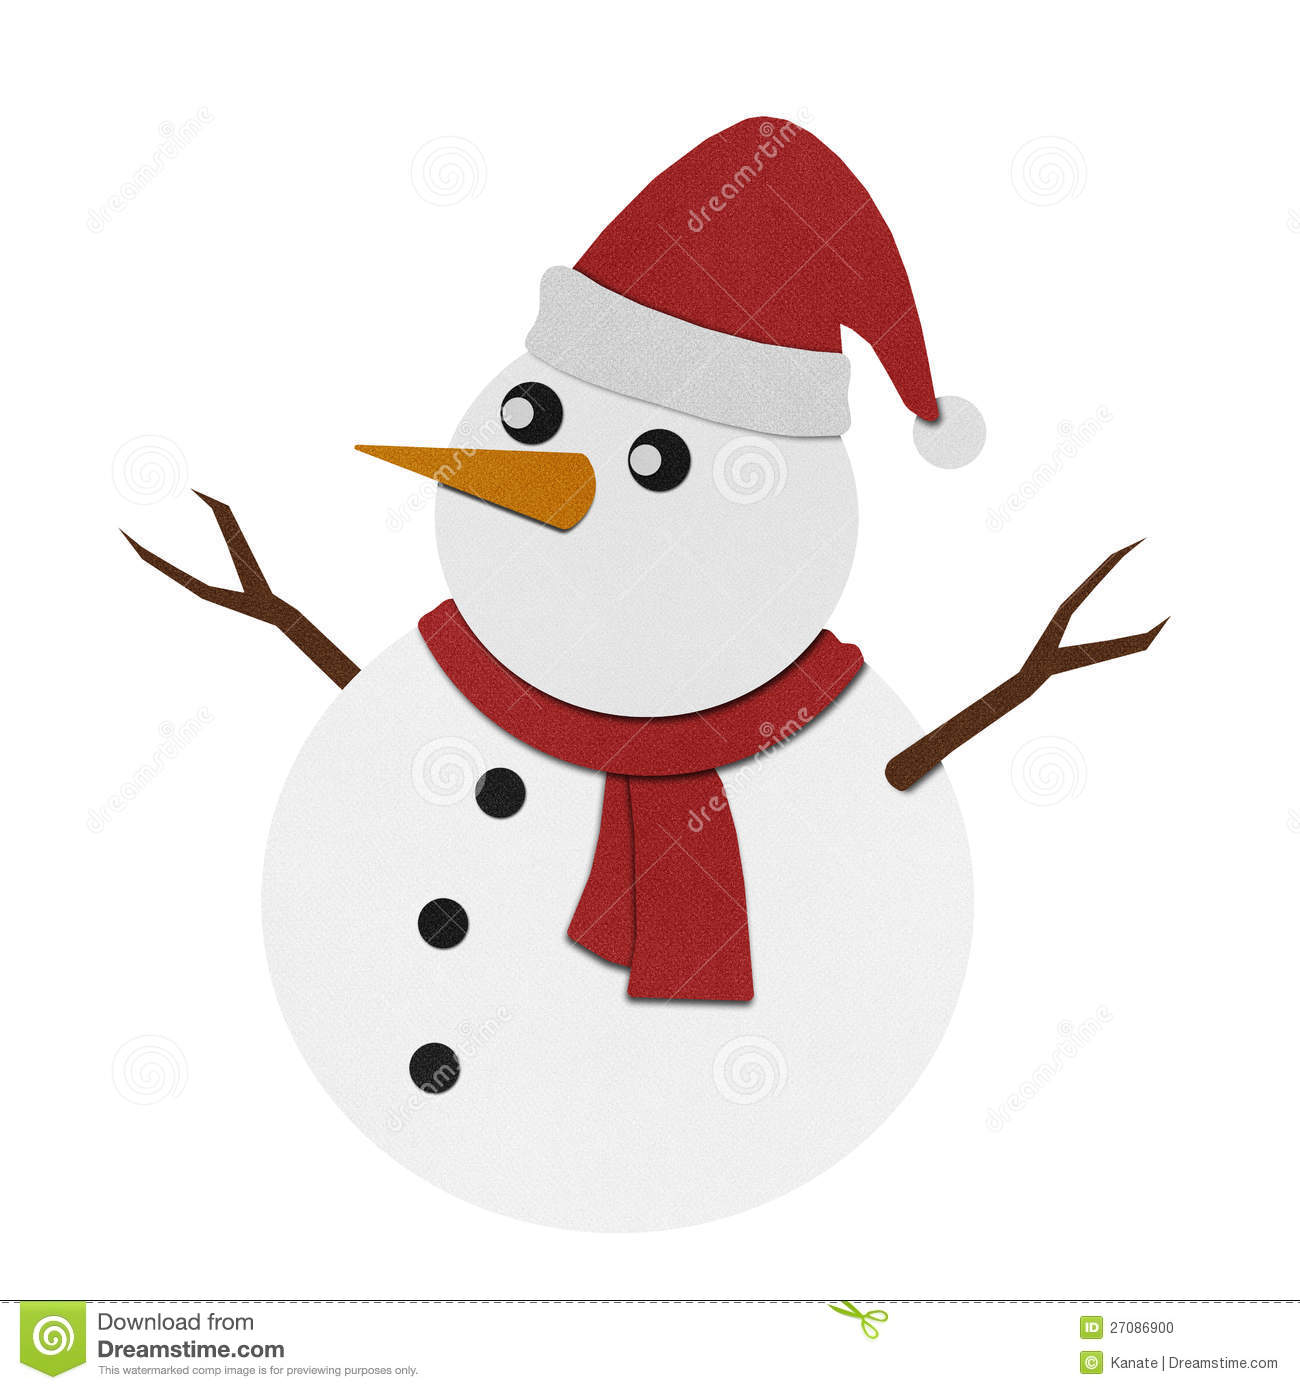 Snowman Recycled Paper Craft On Paper Background. Stock Photo - Image ...